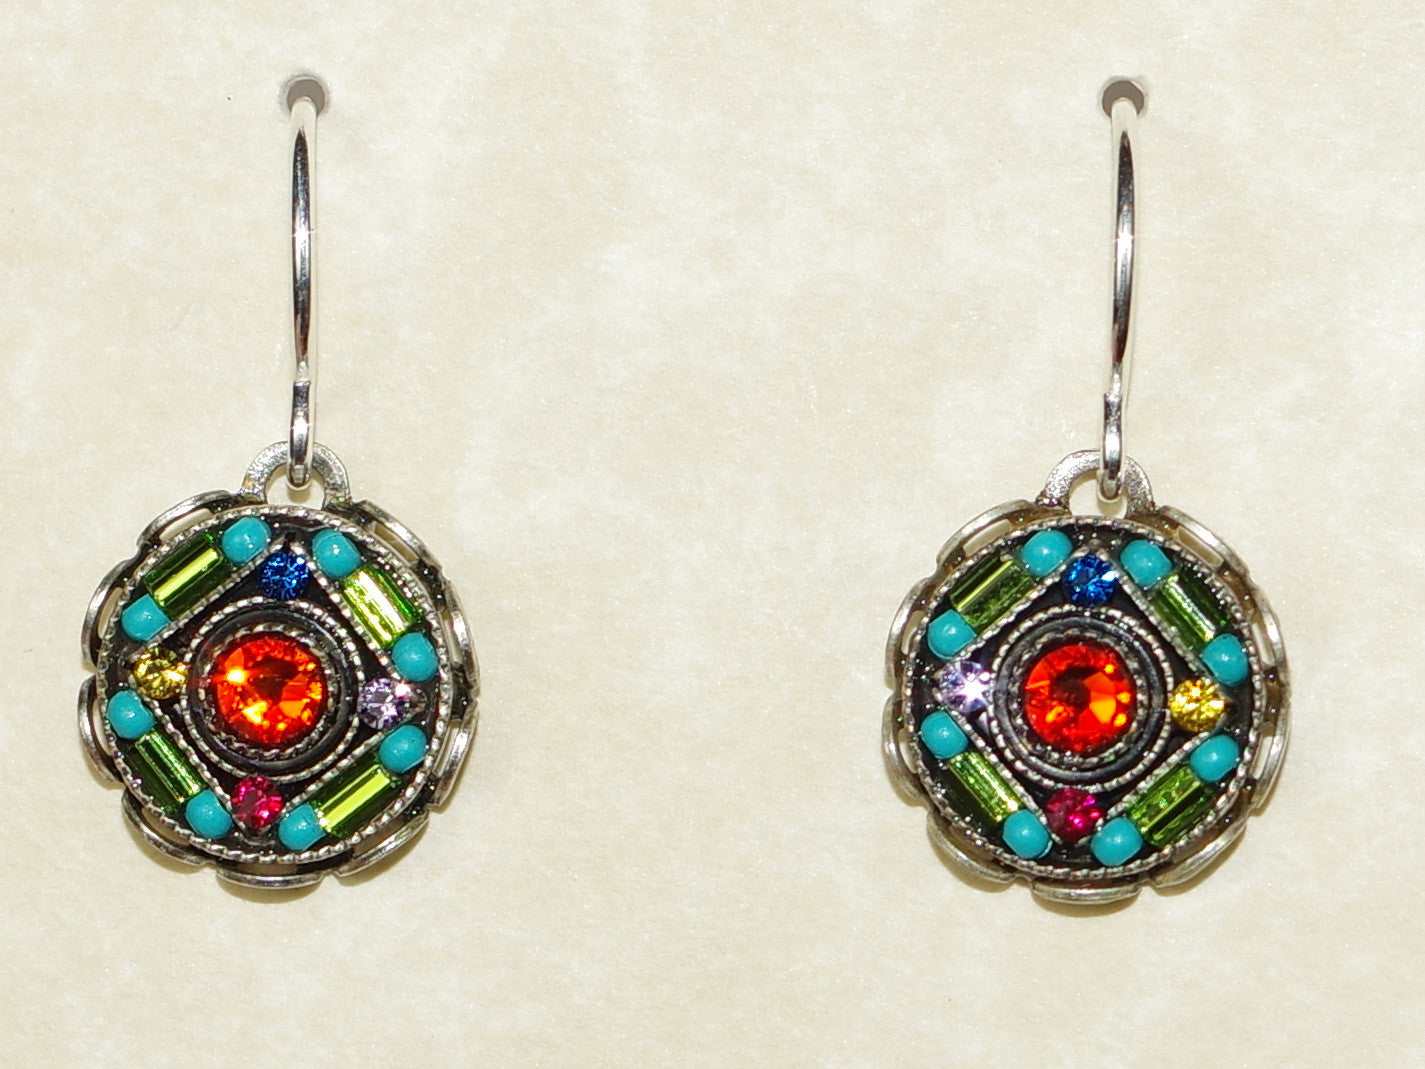 d9065096c7467 FIREFLY EARRINGS ROUND MC: multi color stones in 1/2